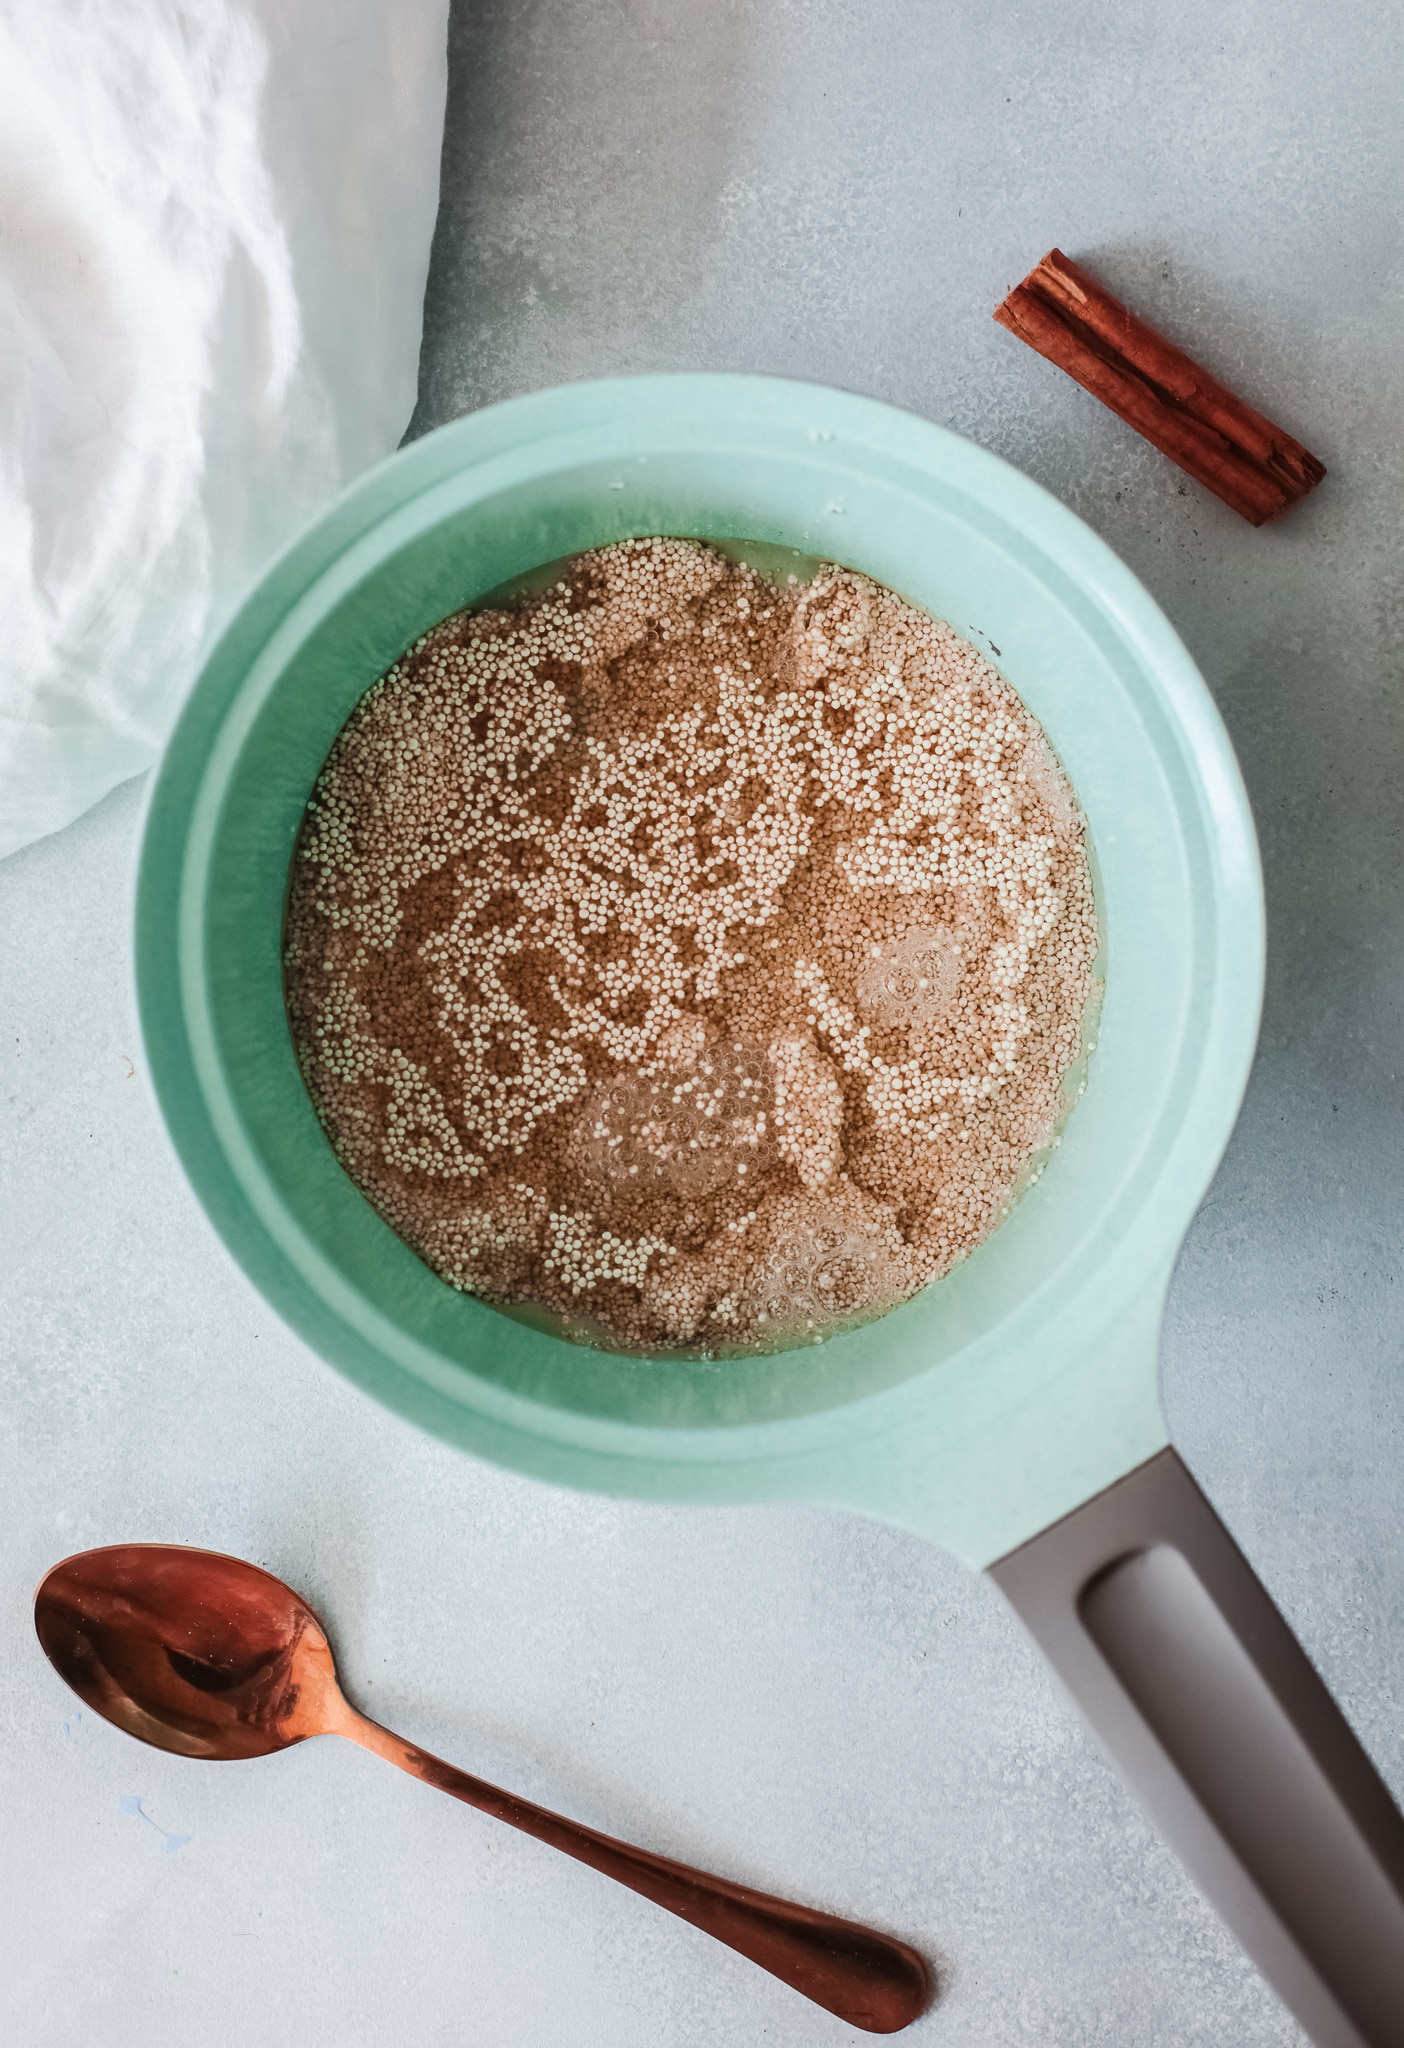 Cinnamon Apple Quinoa Breakfast Bowl Step 2. This Cinnamon Apple Quinoa Breakfast Bowl is a deliciously easy way to start your morning. Packed with flavor and healthy ingredients, this delicious breakfast bowl will keep you full and energized for hours.